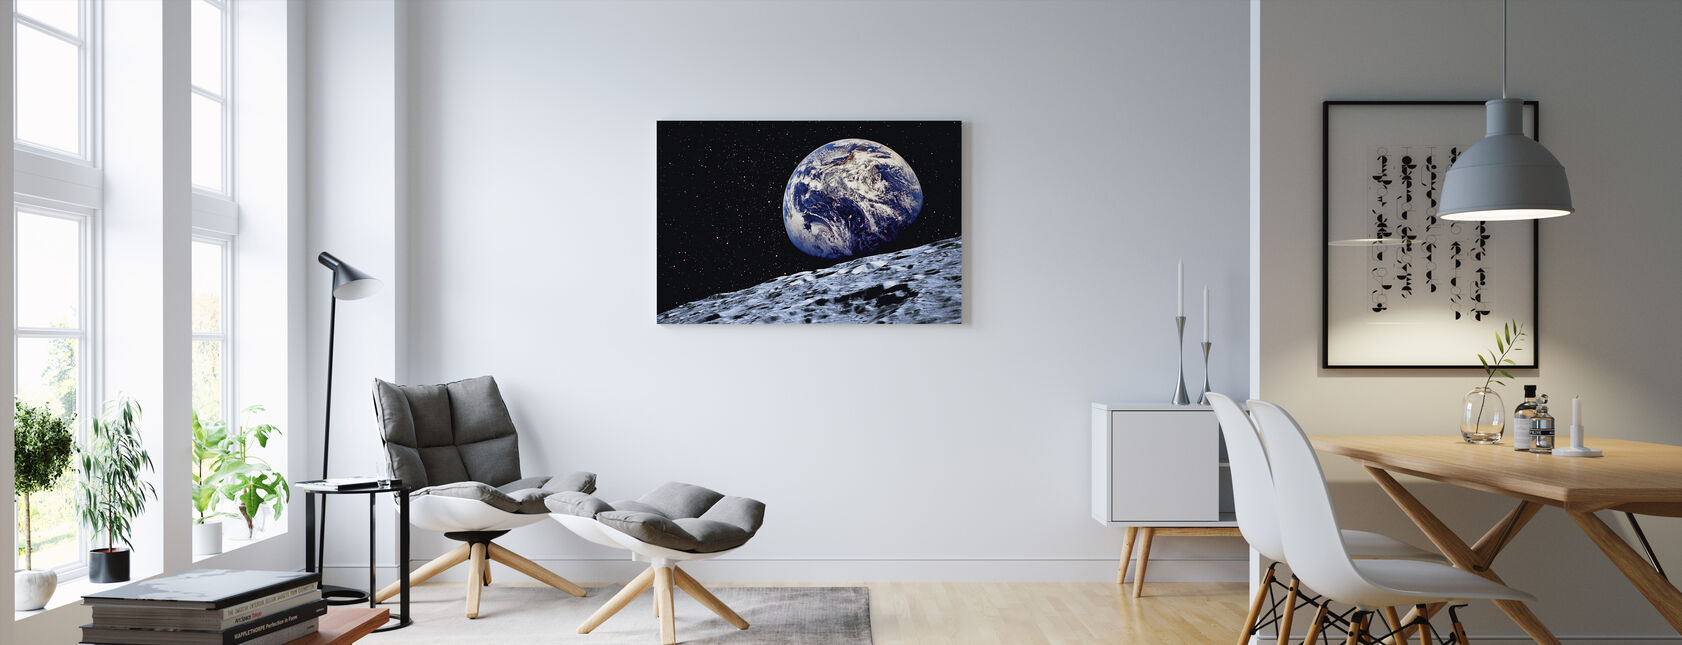 Earth from the Surface of the Moon - Canvas print - Living Room